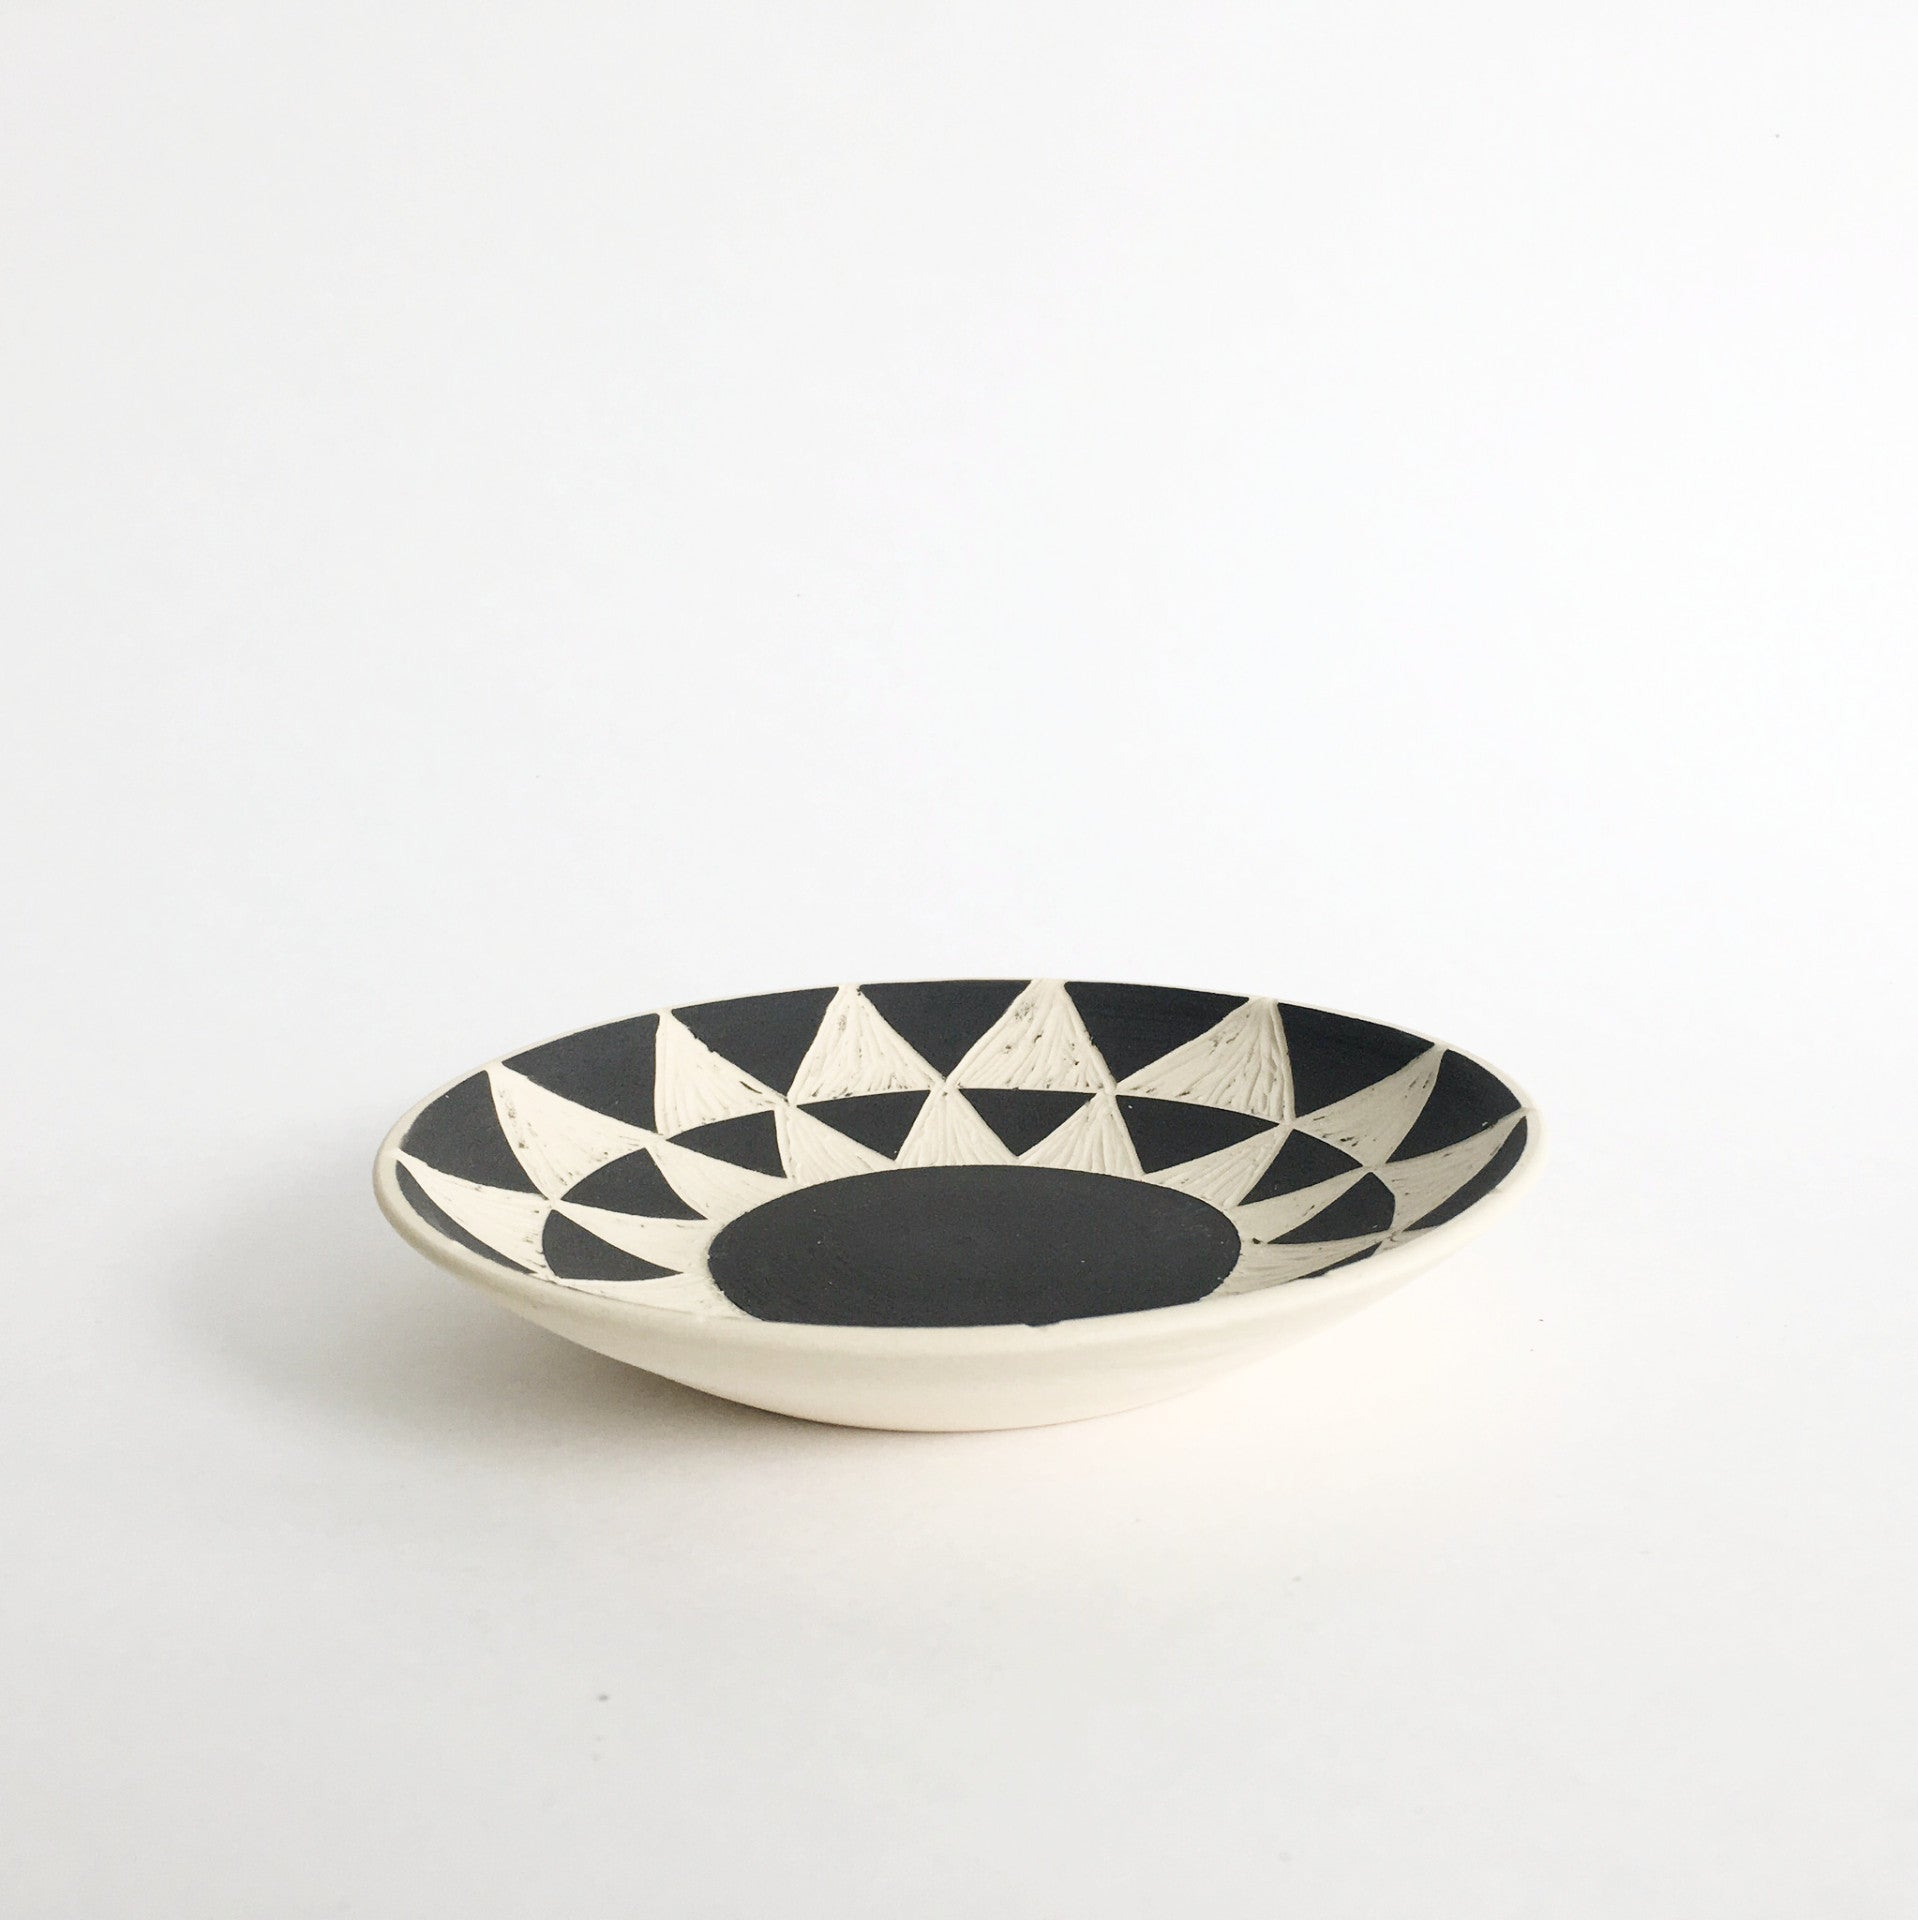 PATTERNED DISH No.1